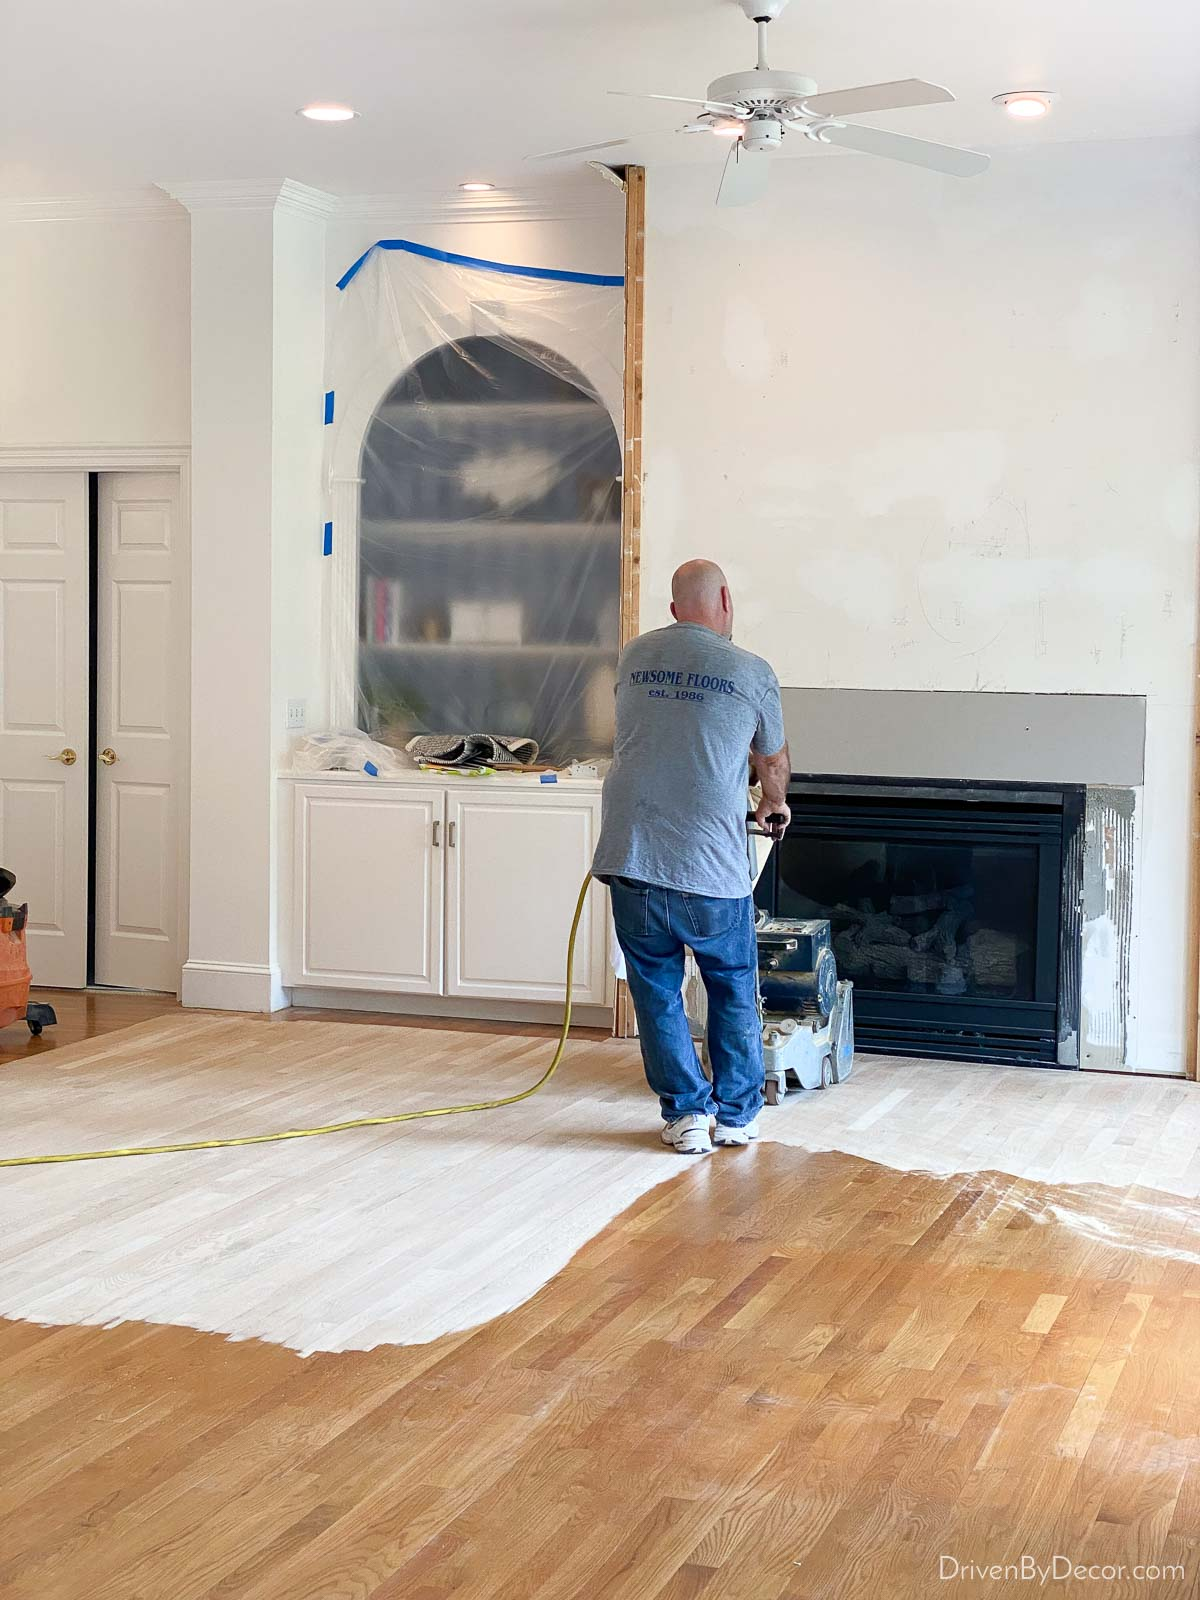 The step by step of refinishing hardwood floors